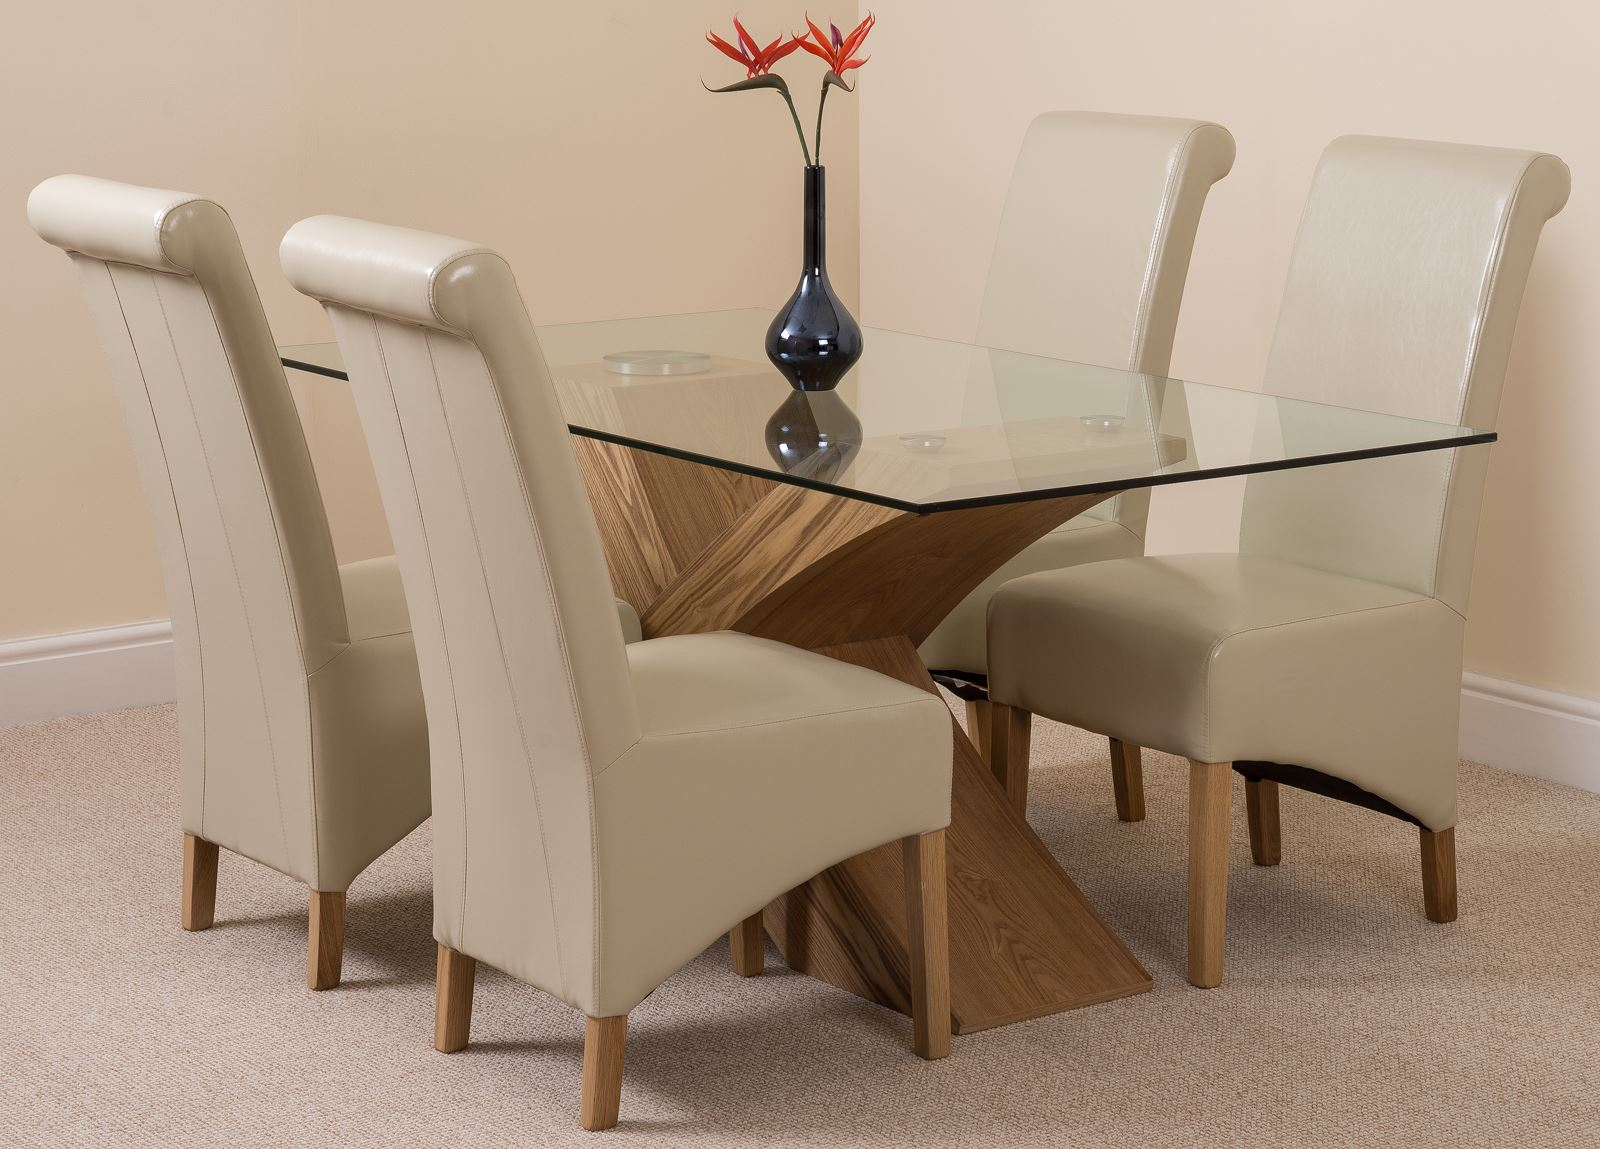 Valencia 160cm Glass Dining Room Table 4 Red Leather Montana Chairs EBay